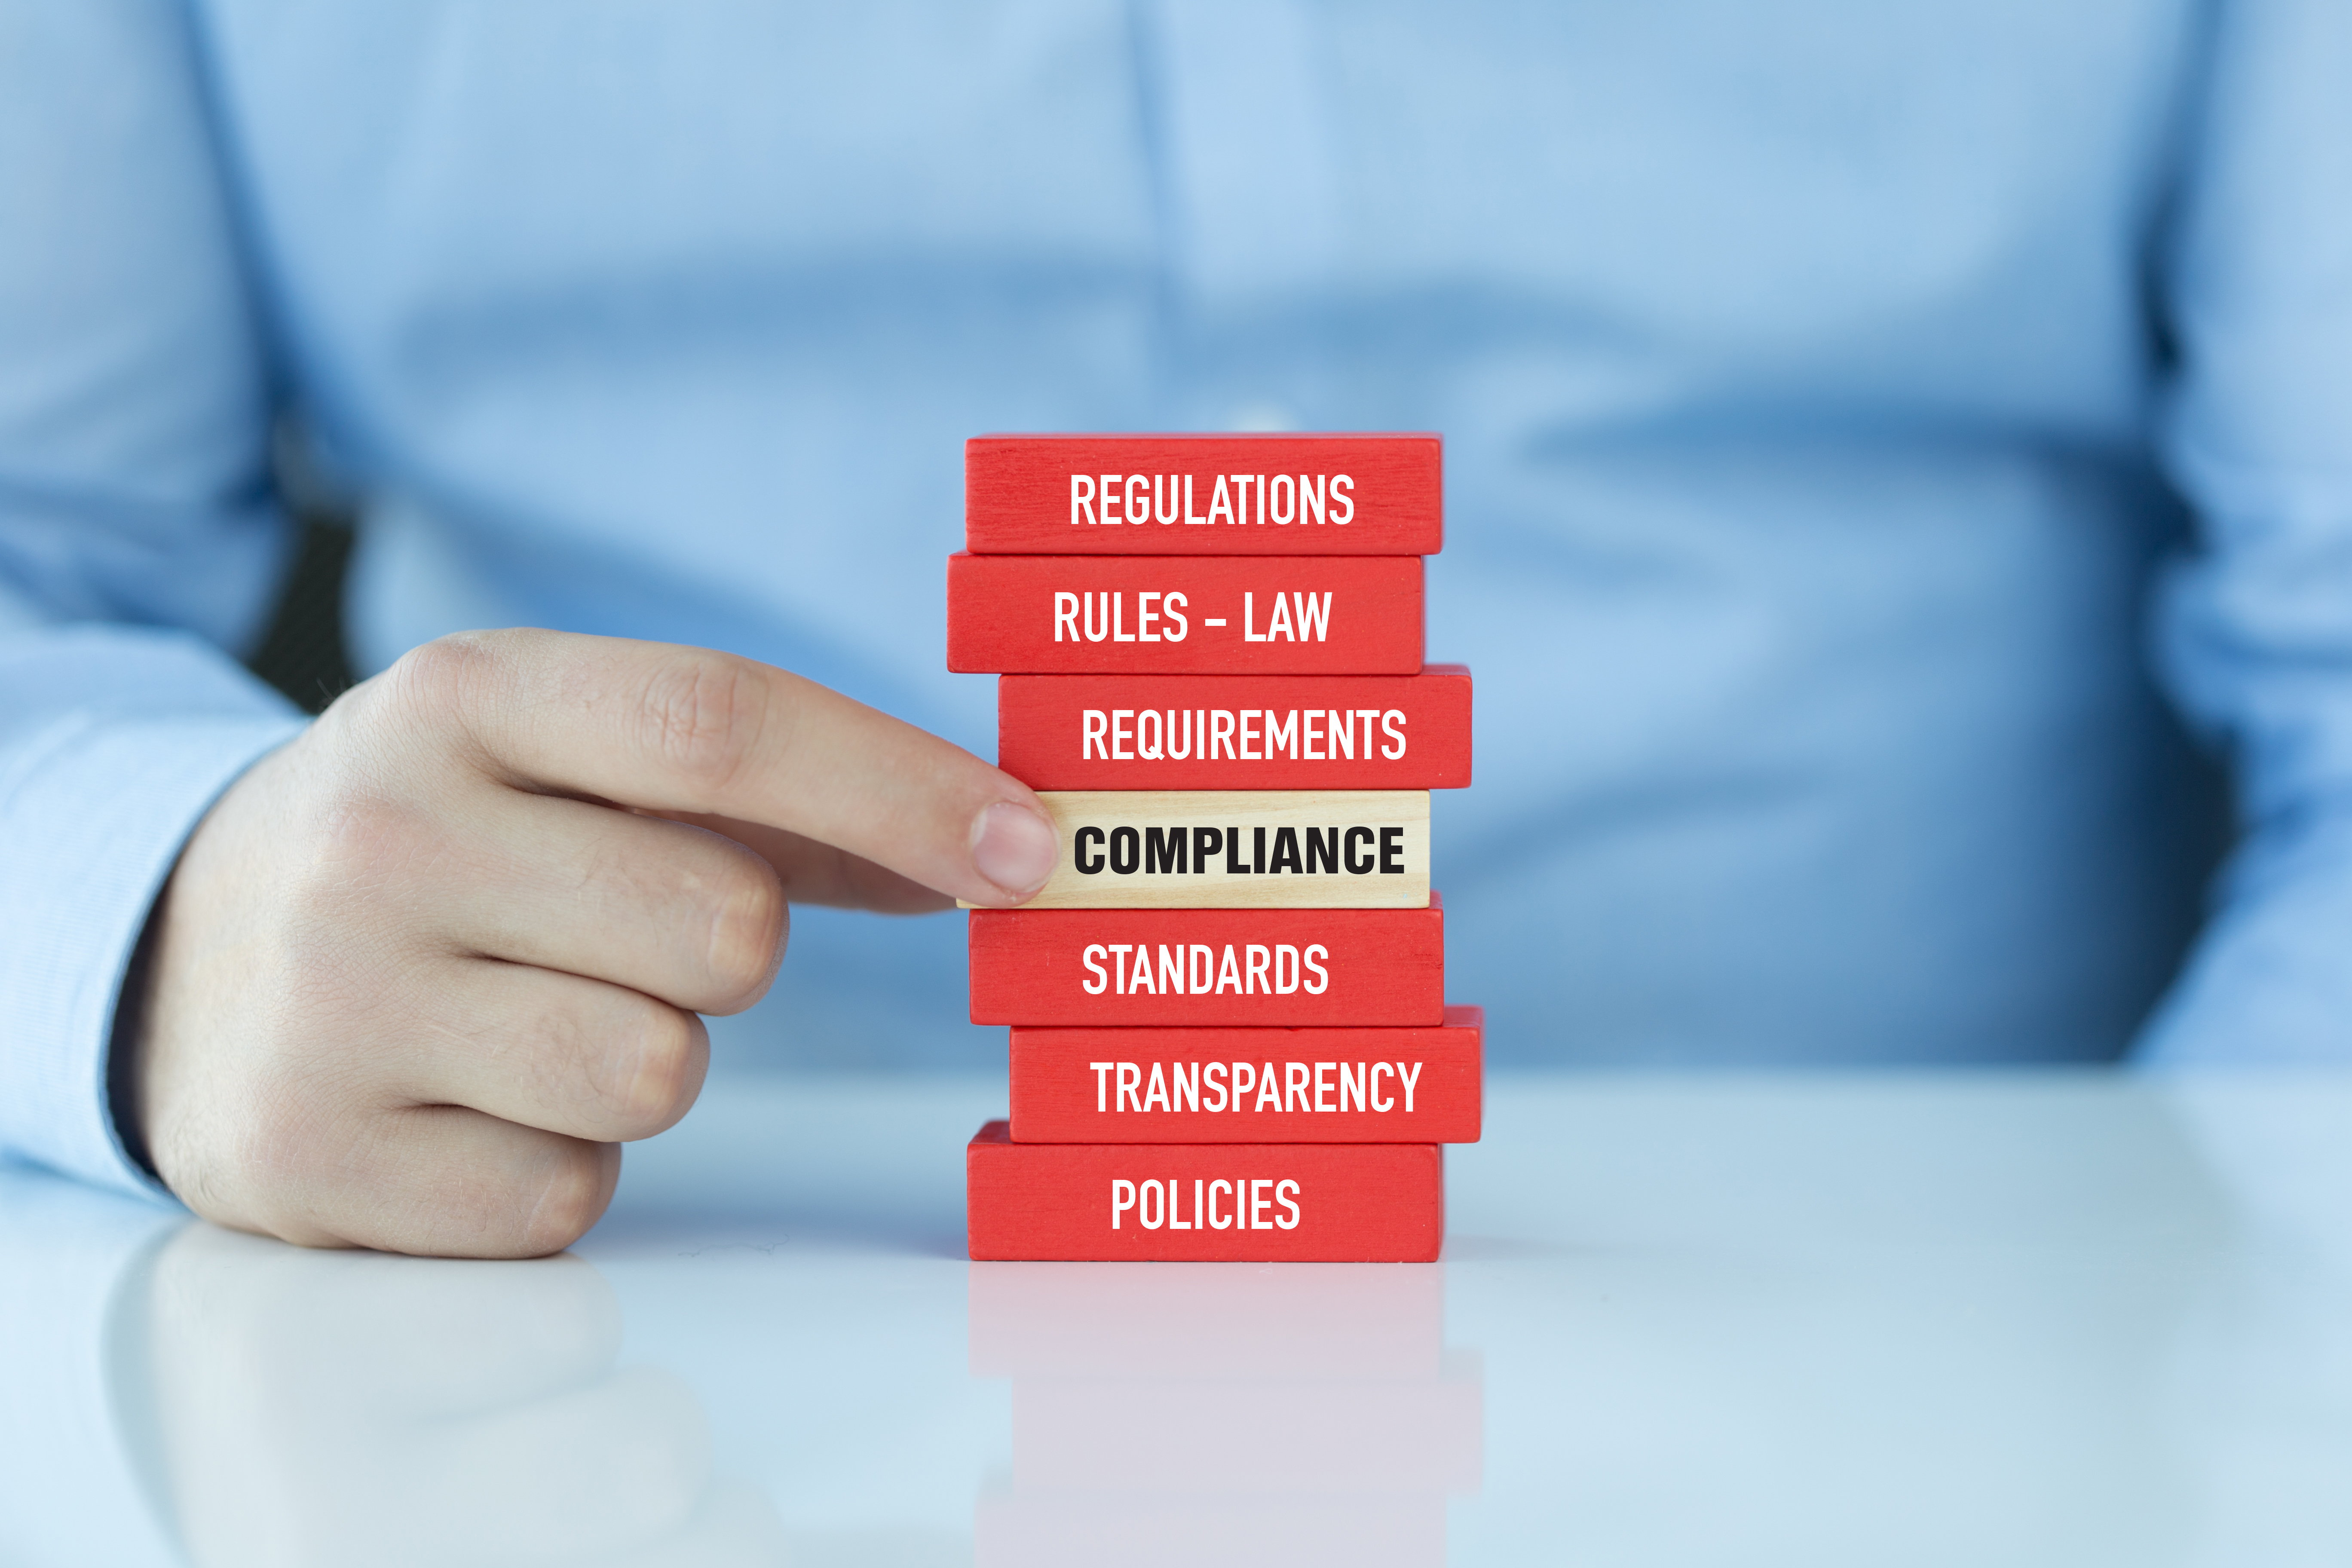 regulations, rules-law, requirements, compliance, standards, transparency, policies